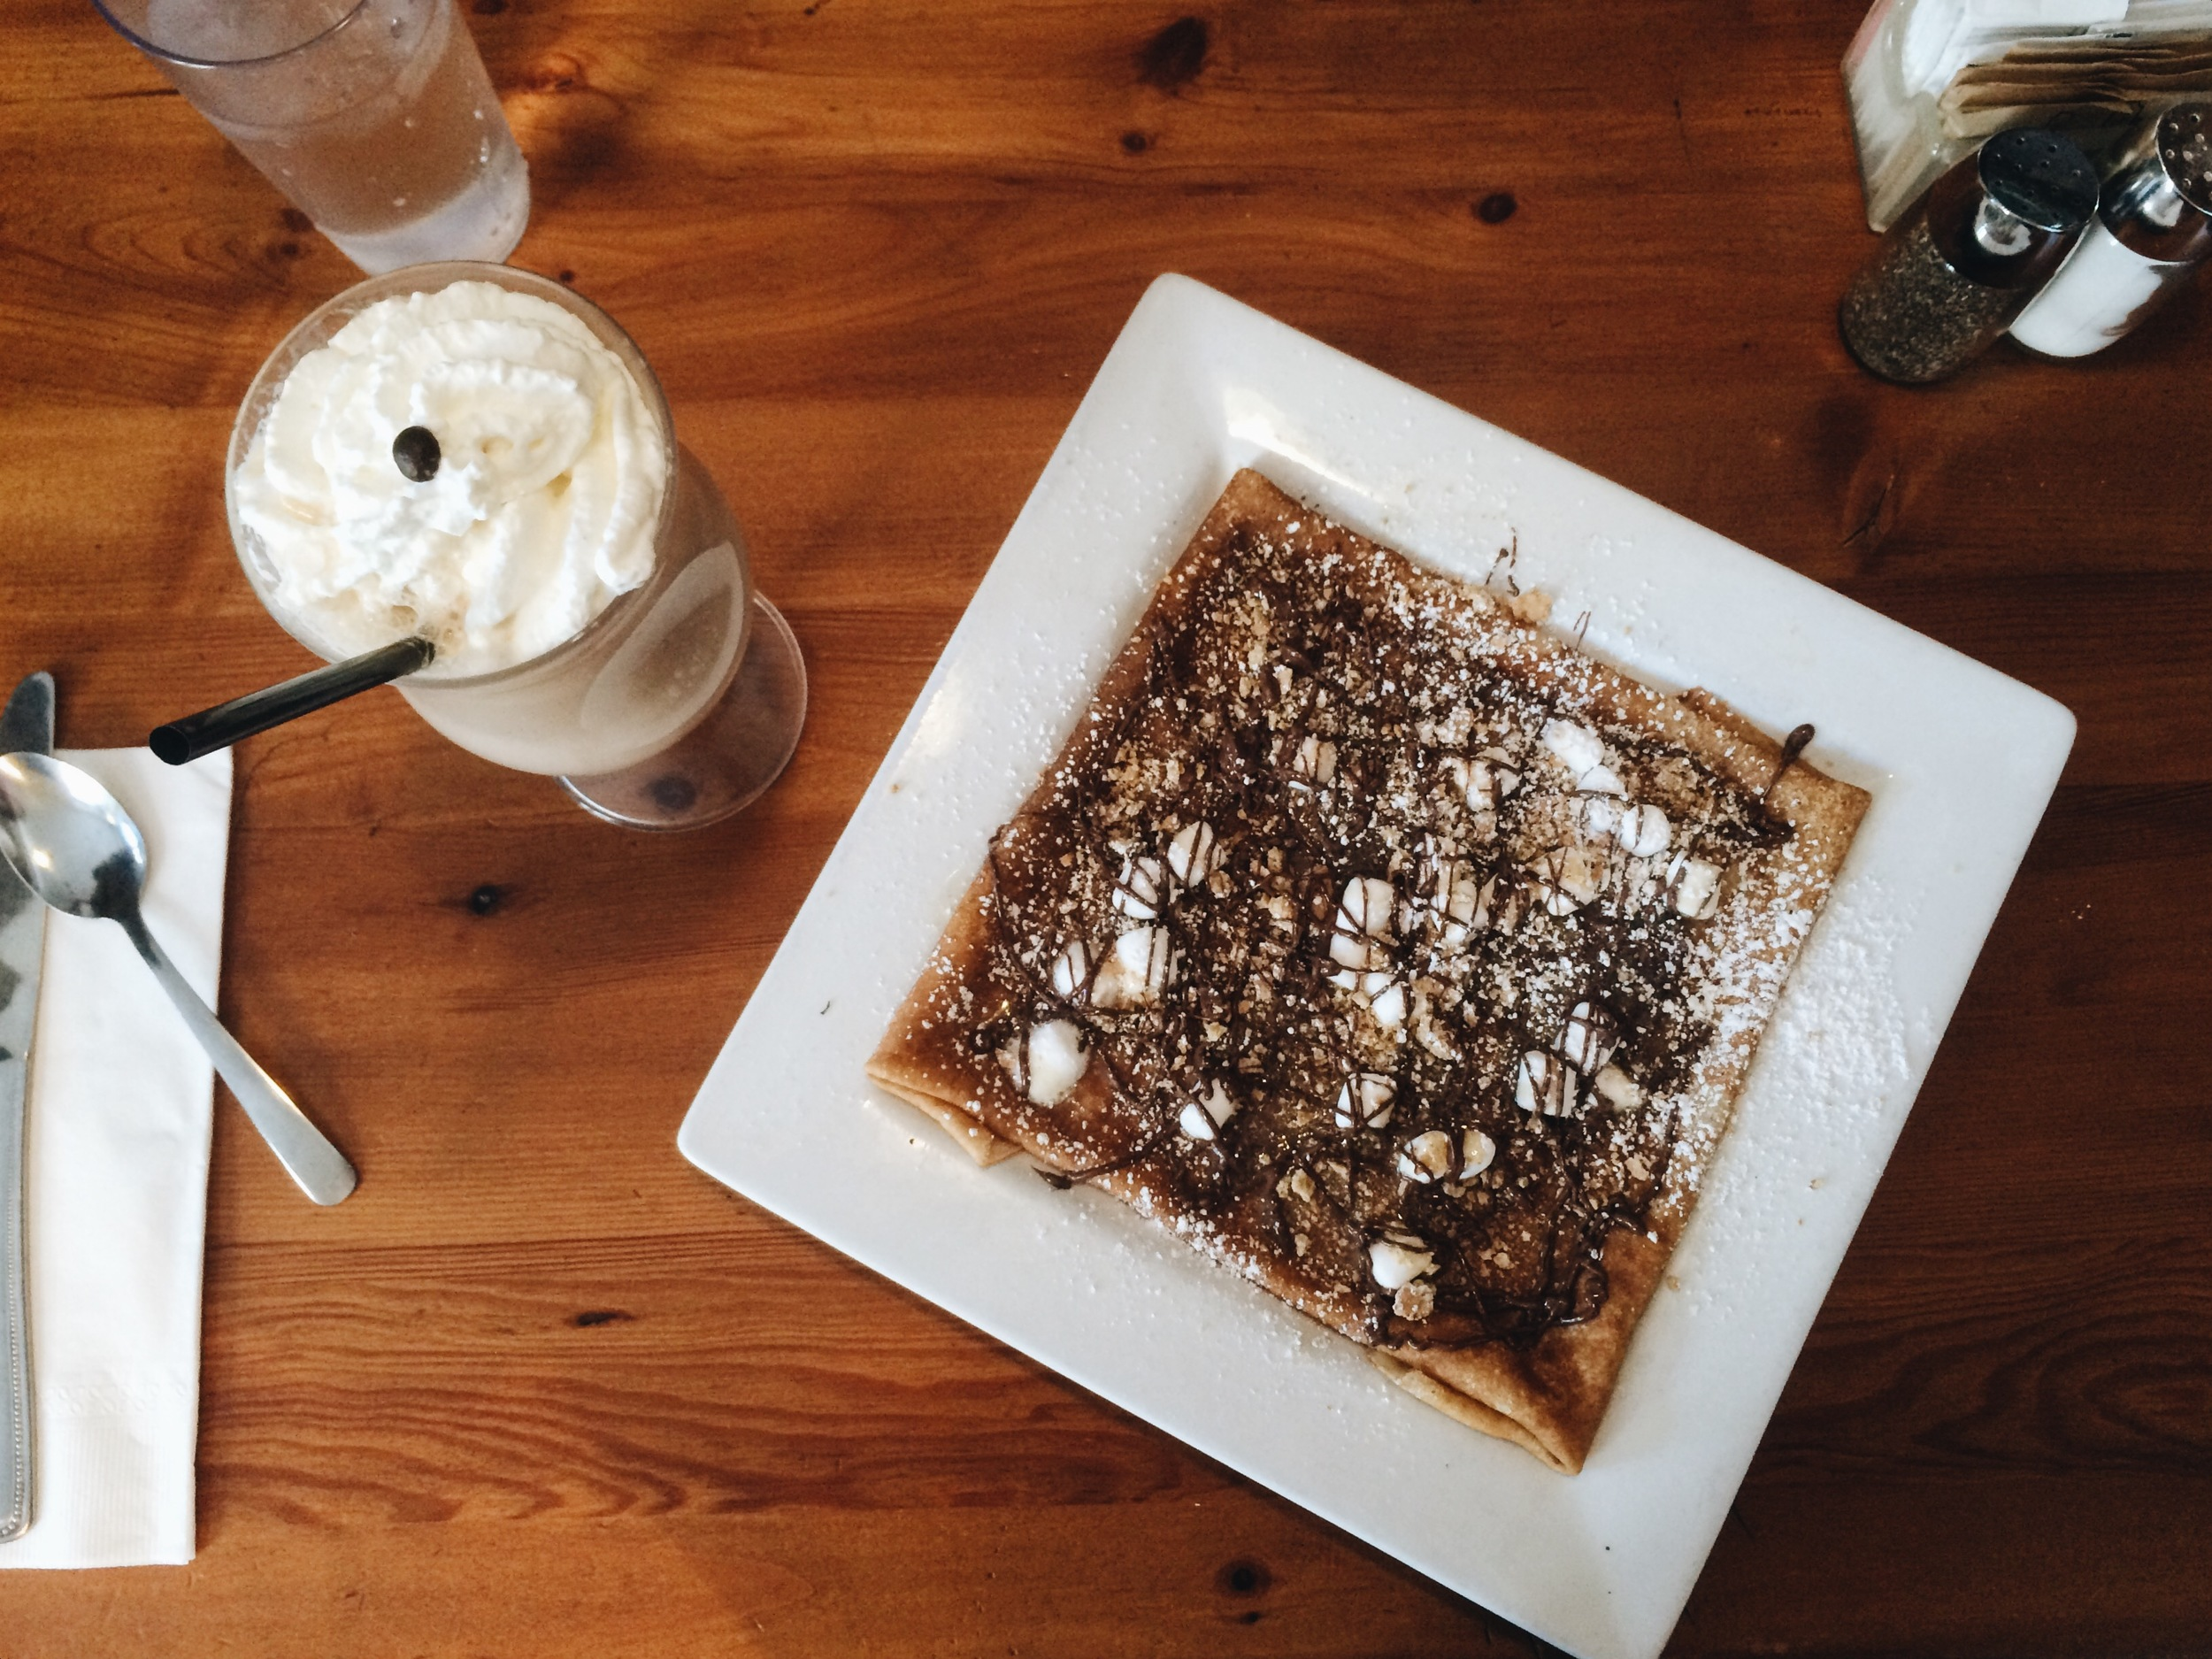 My S'mores crépe and an iced cappuccino.